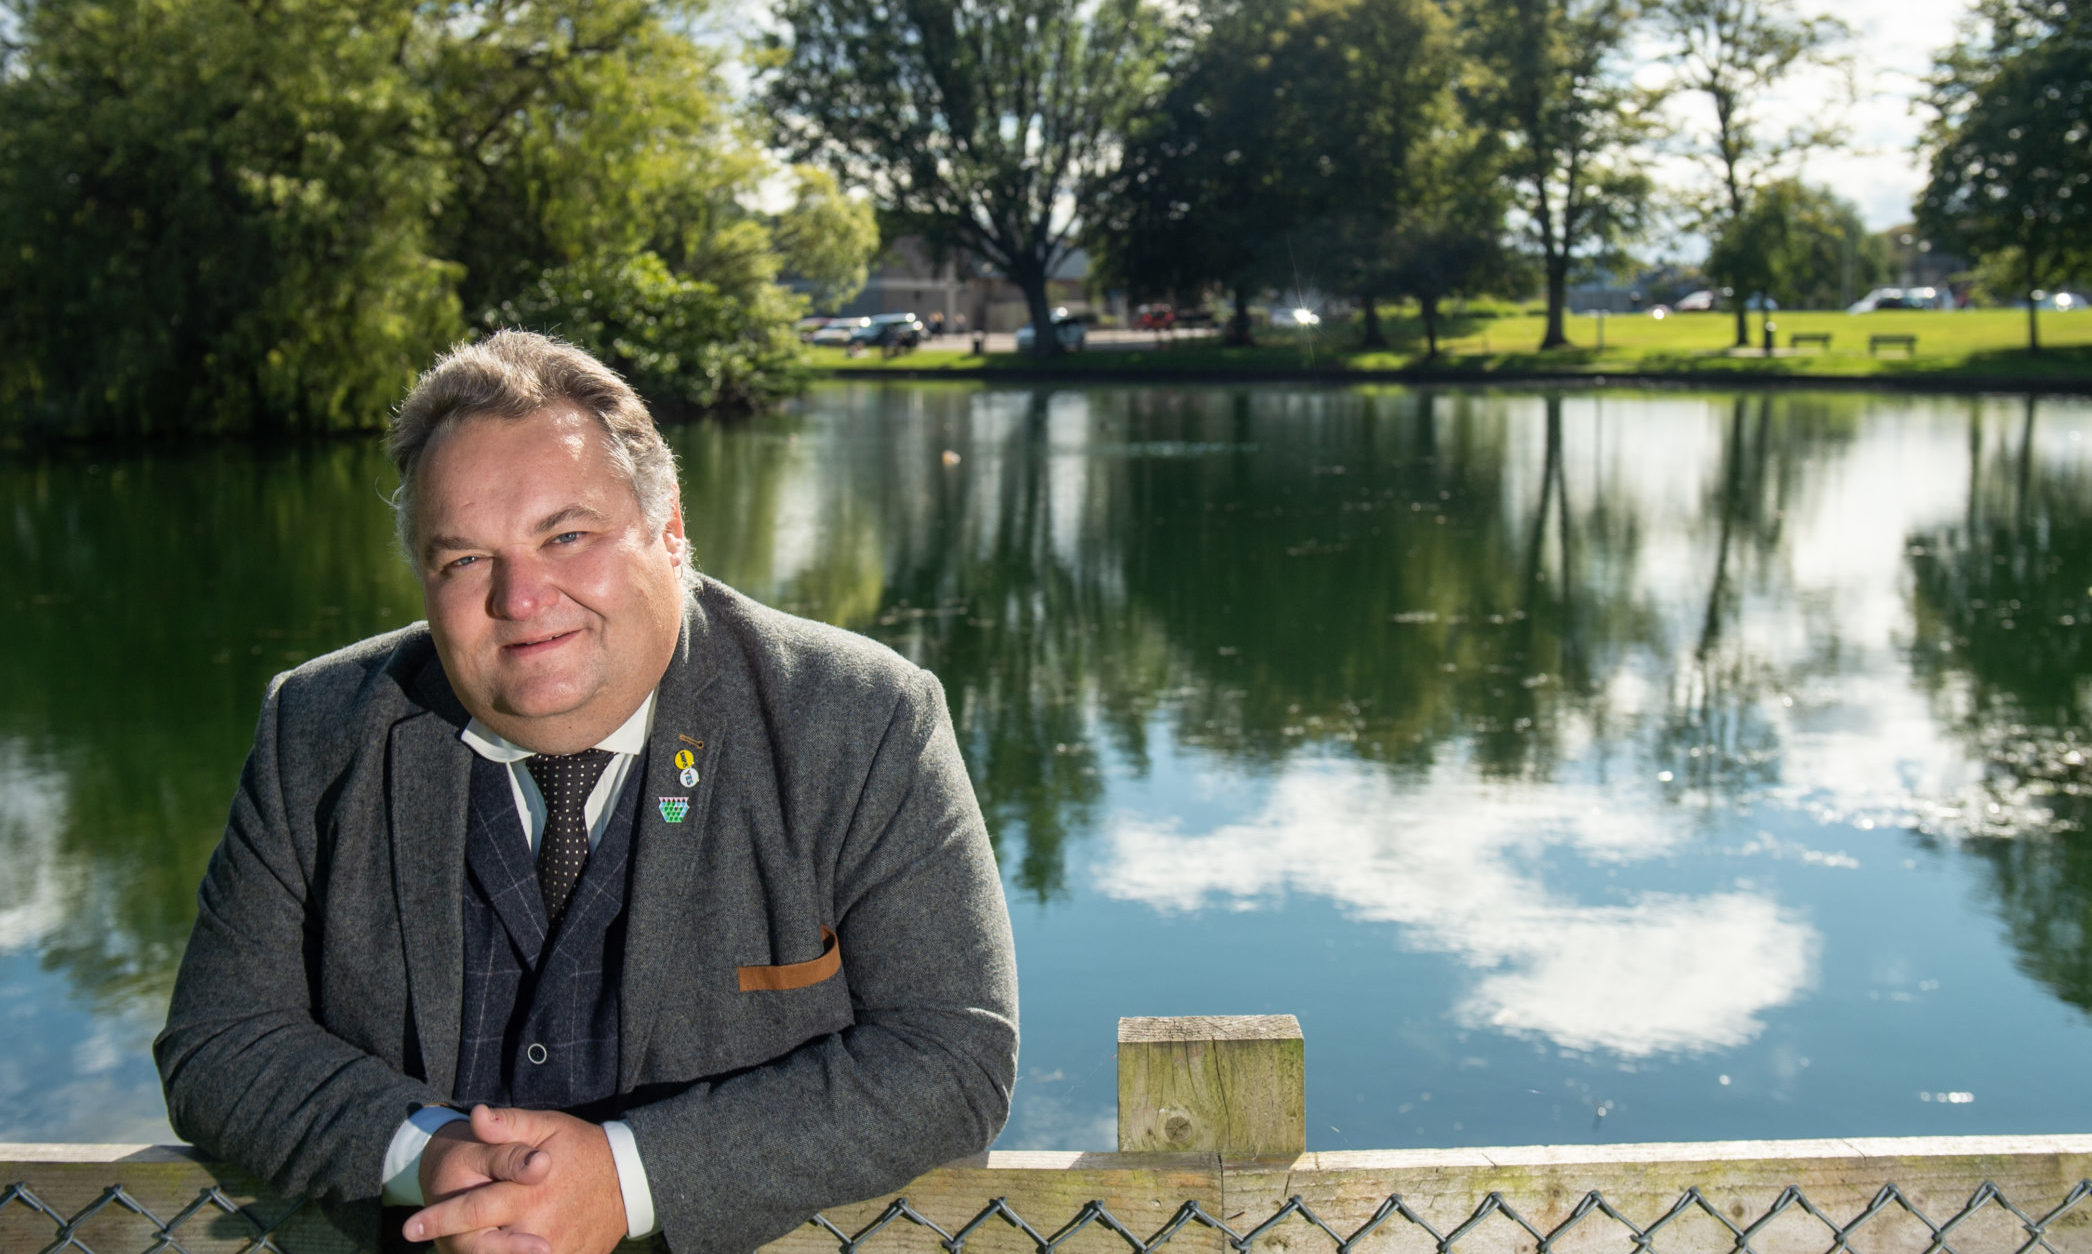 Council leader Graham Leadbitter Picture by Jason Hedges.